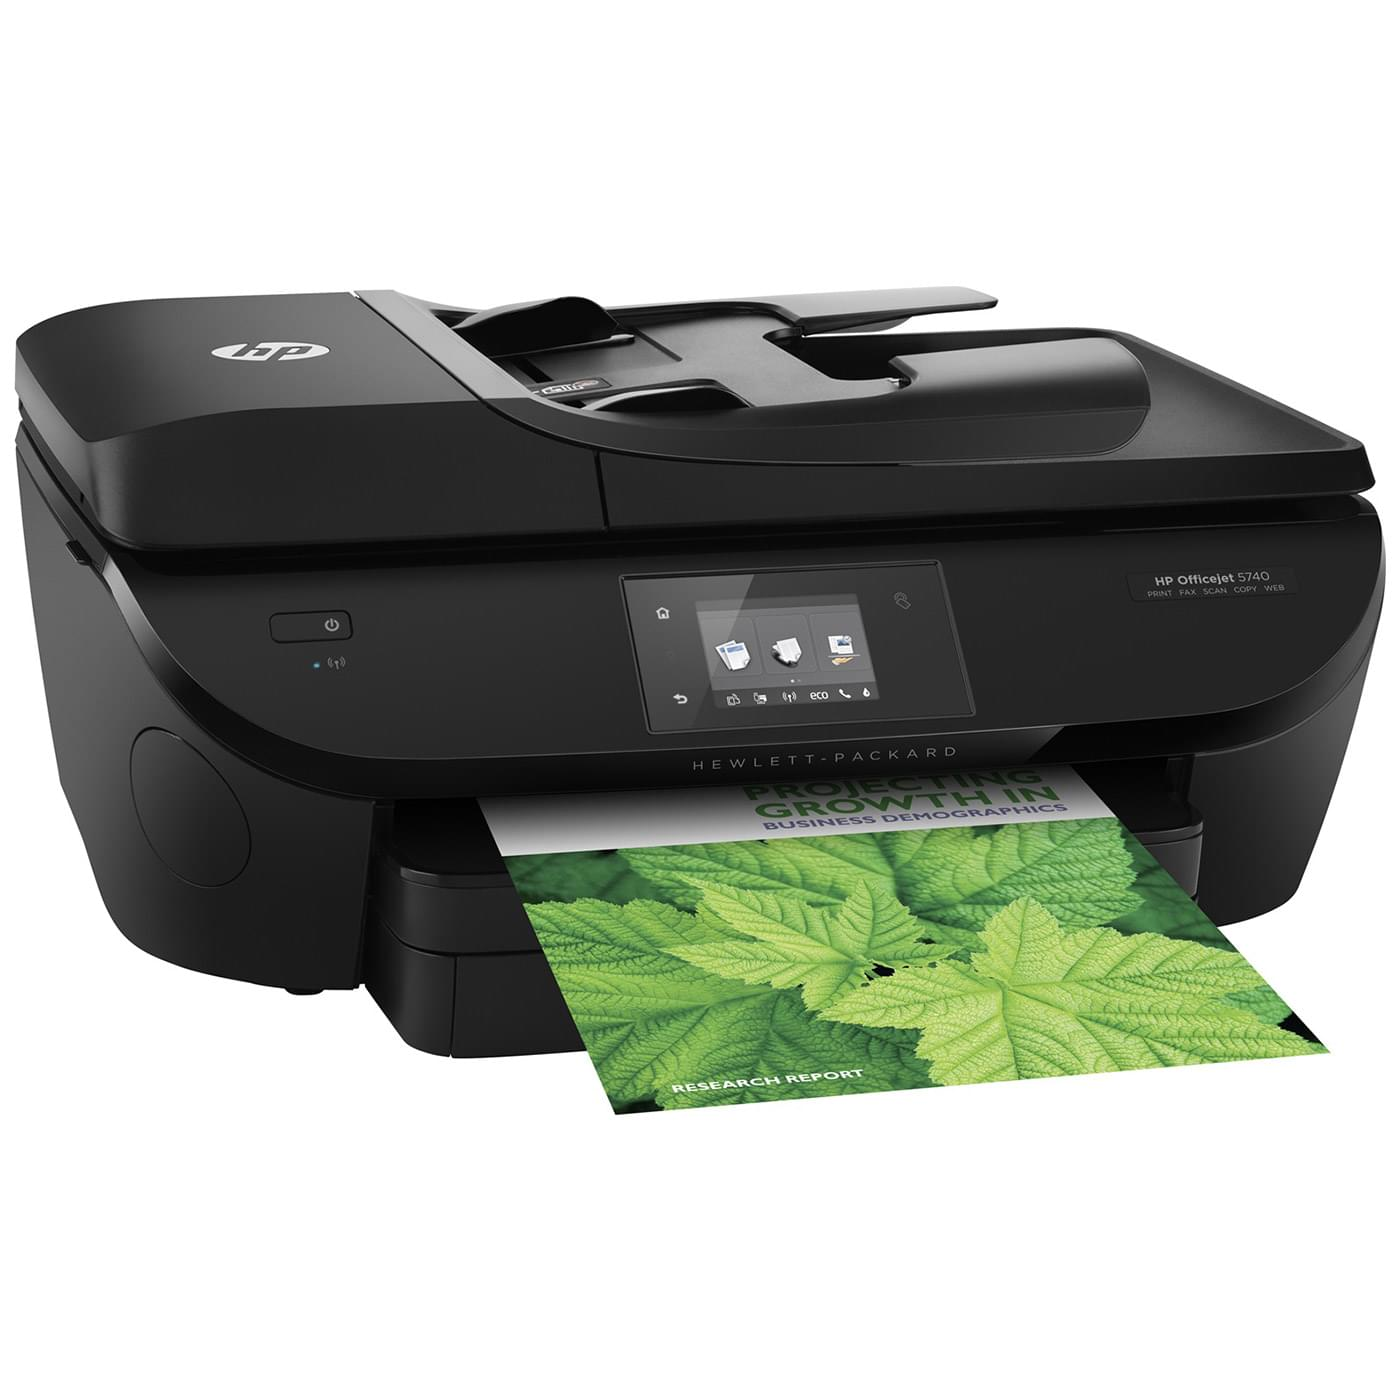 Imprimante multifonction HP OfficeJet 5740 e-All-in-One Printer - 0